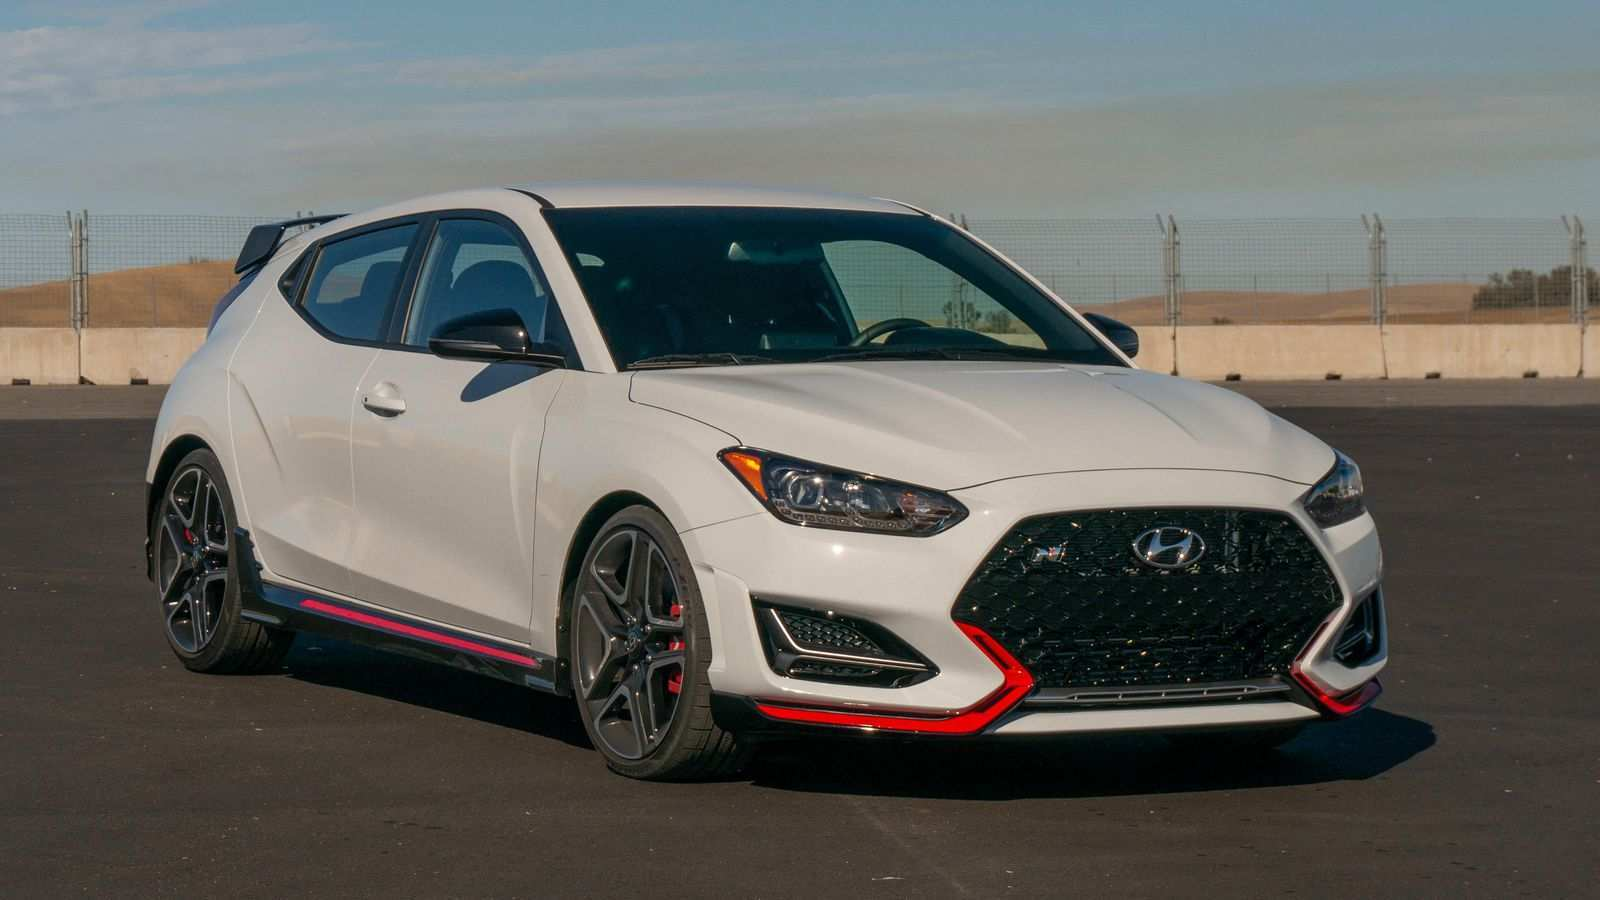 89 New 2019 Hyundai Veloster Wallpaper